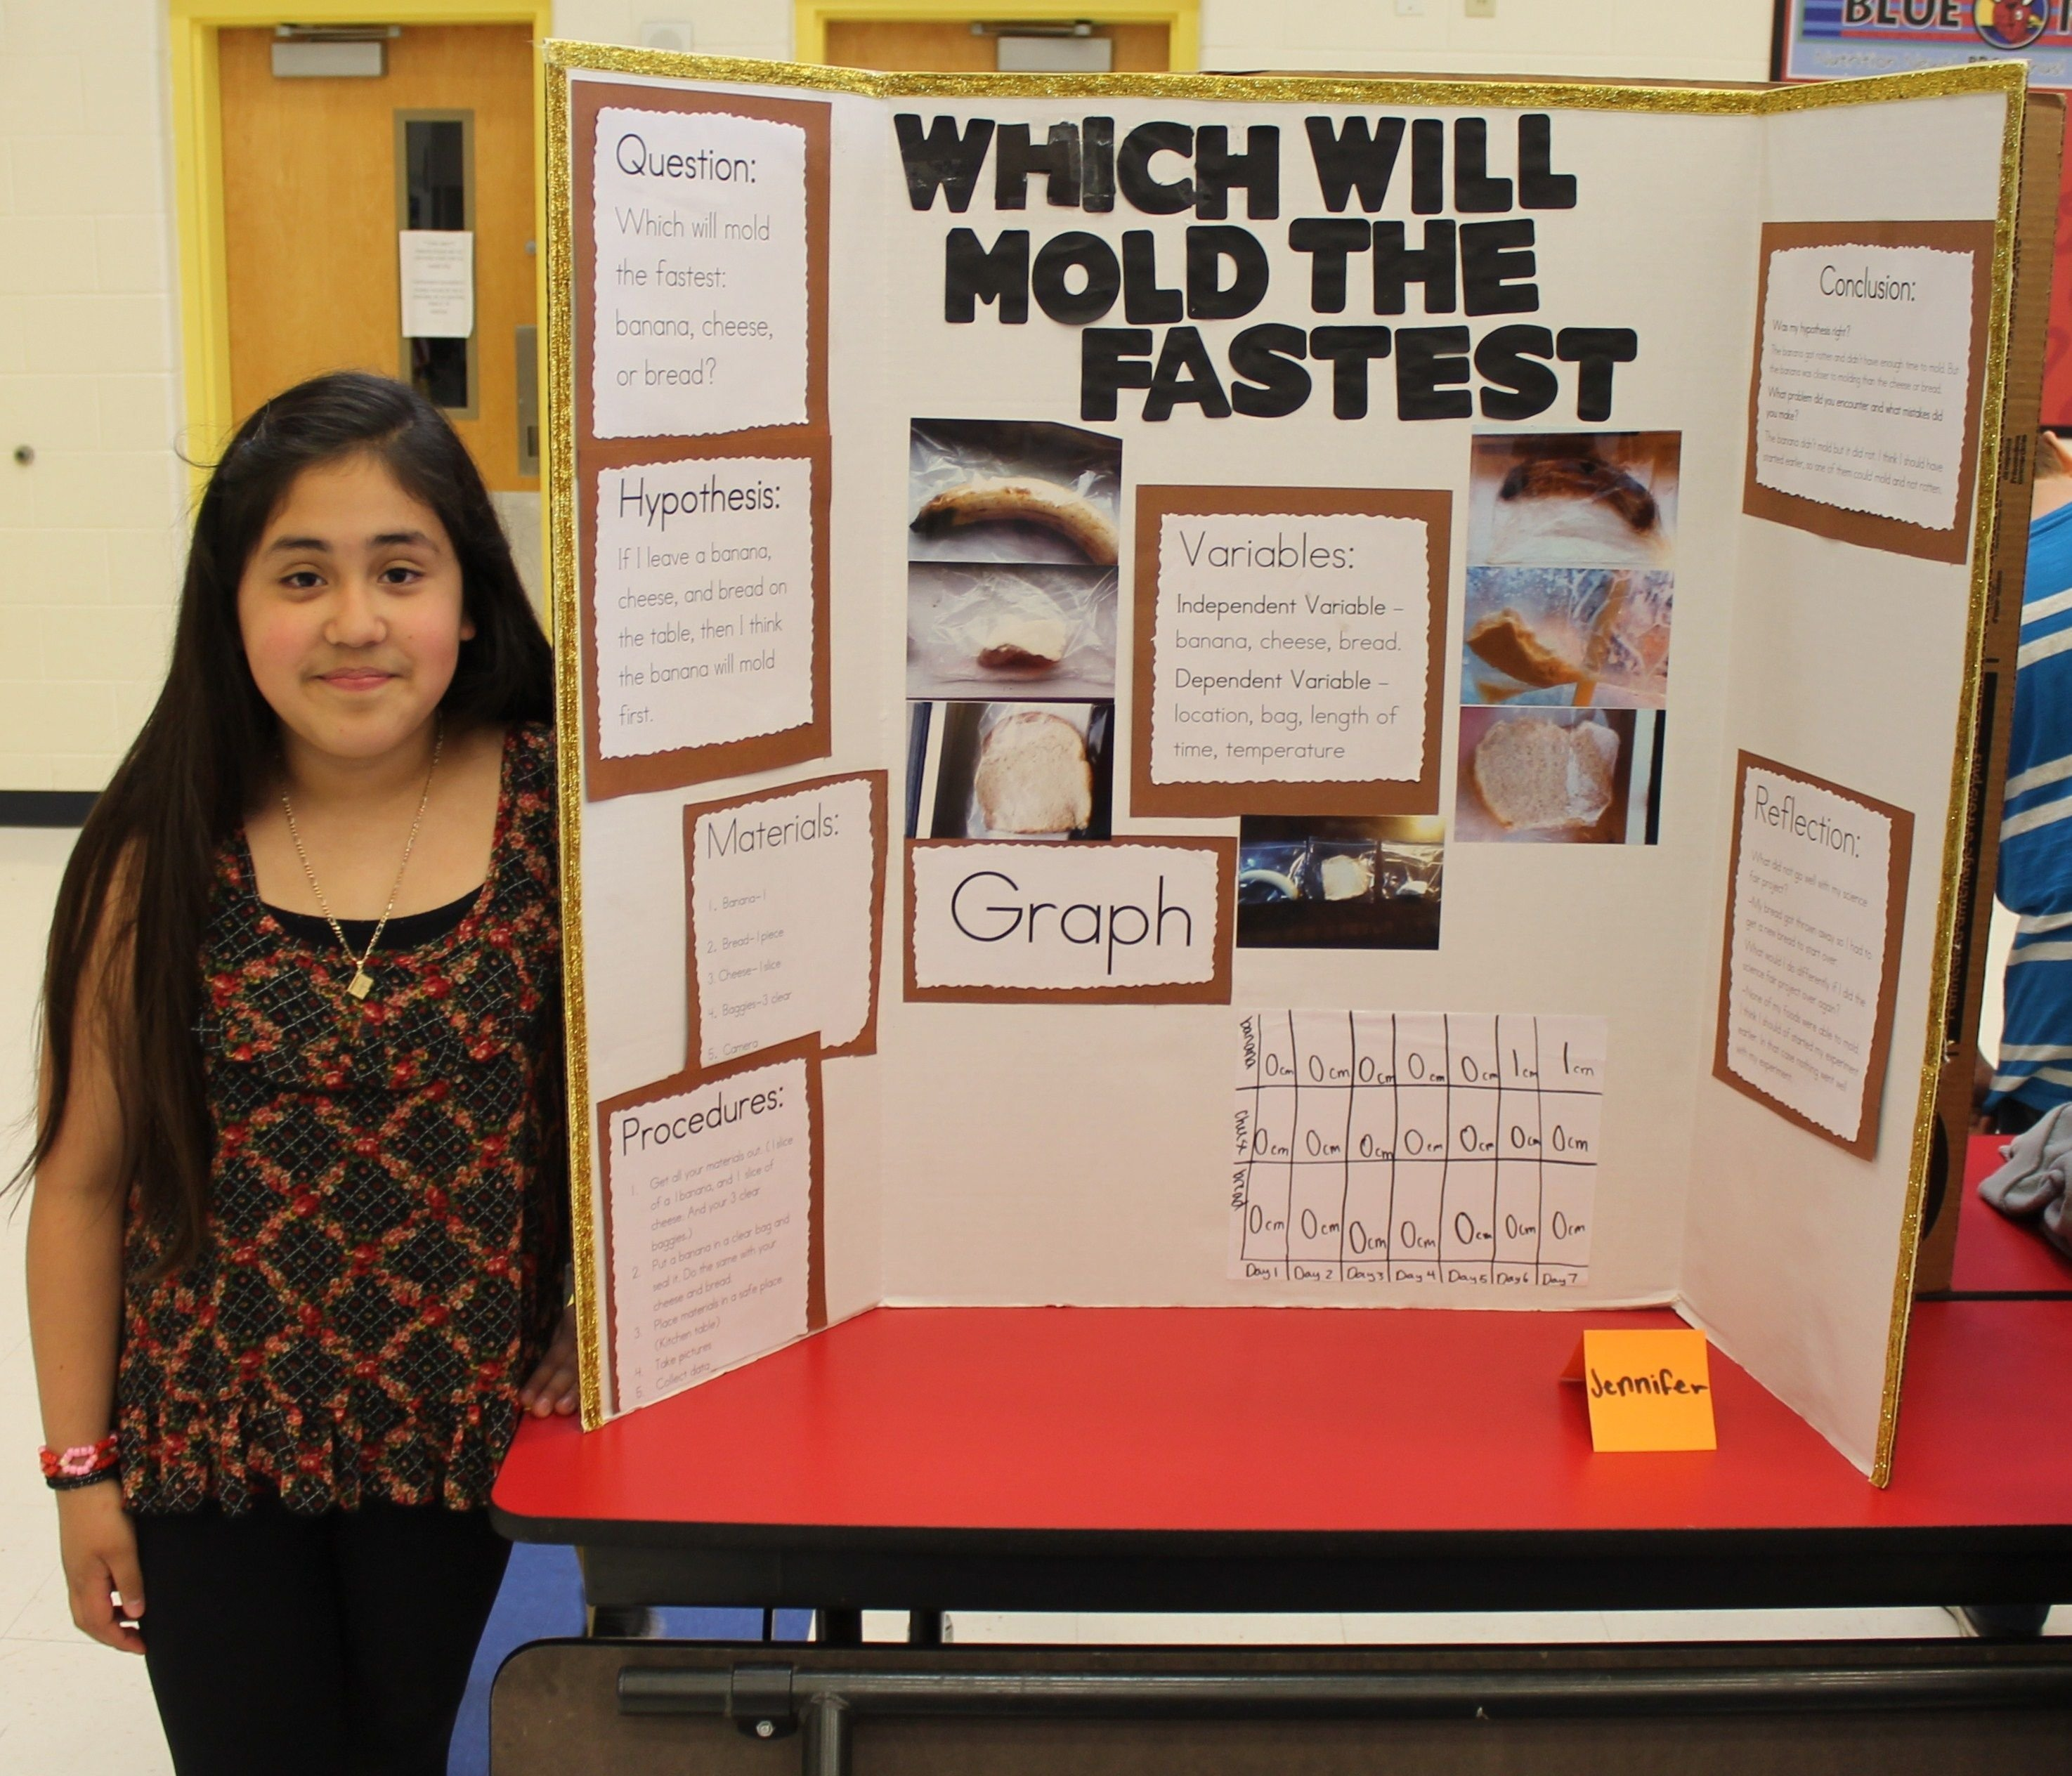 10 Attractive Science Fair Project Ideas For 3Rd Grade easy science fair projects for 3rd grade idea google search 12